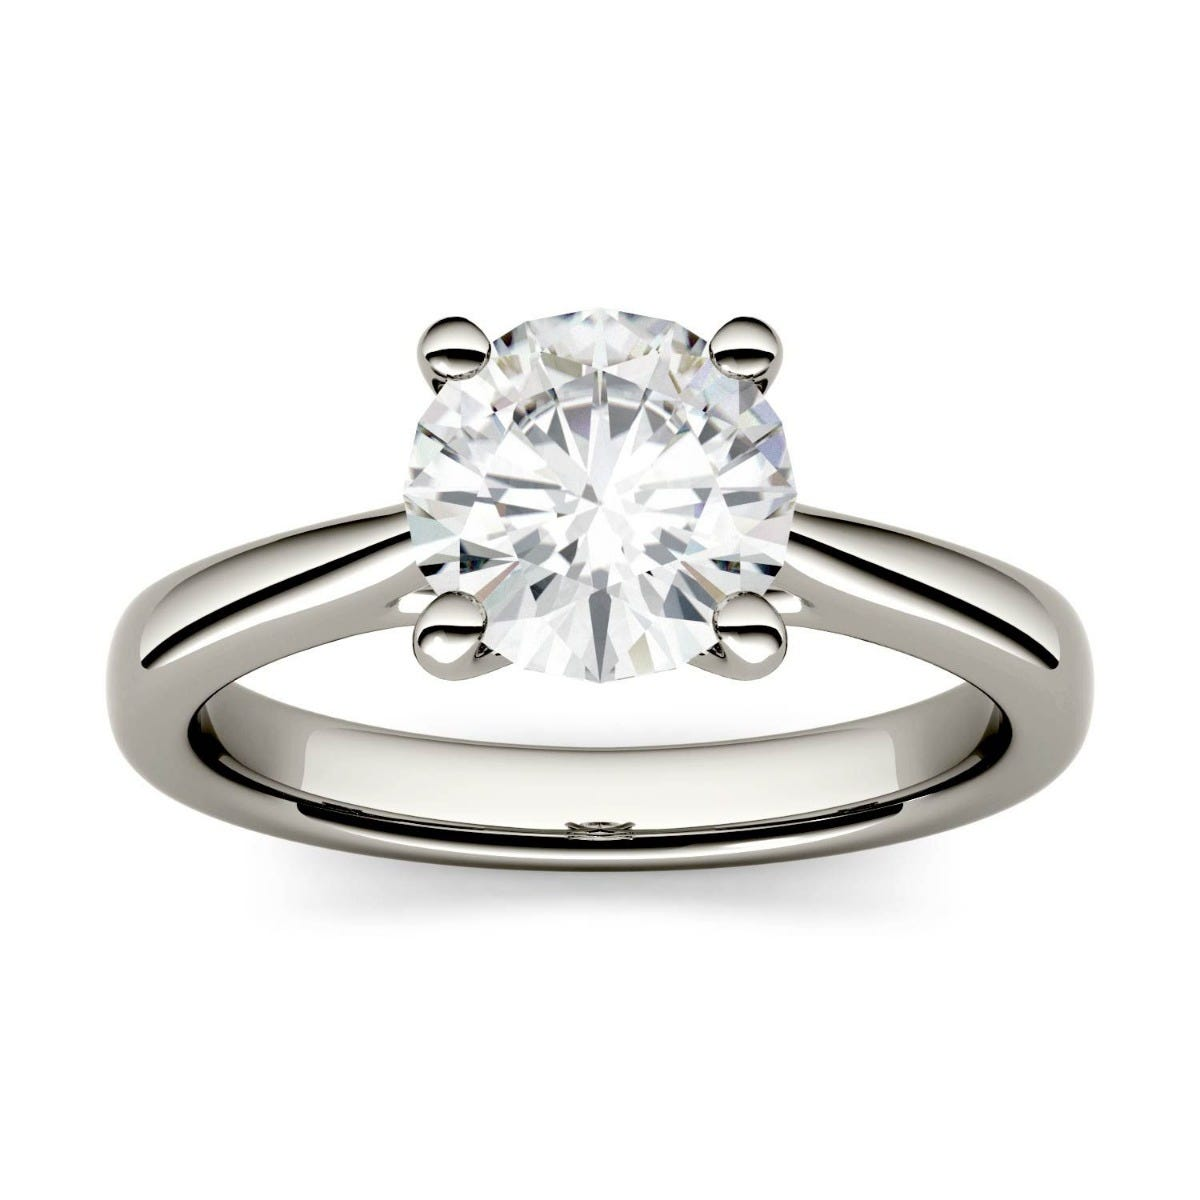 Forever One Round Colorless Moissanite Four Prong Solitaire Engagement Ring